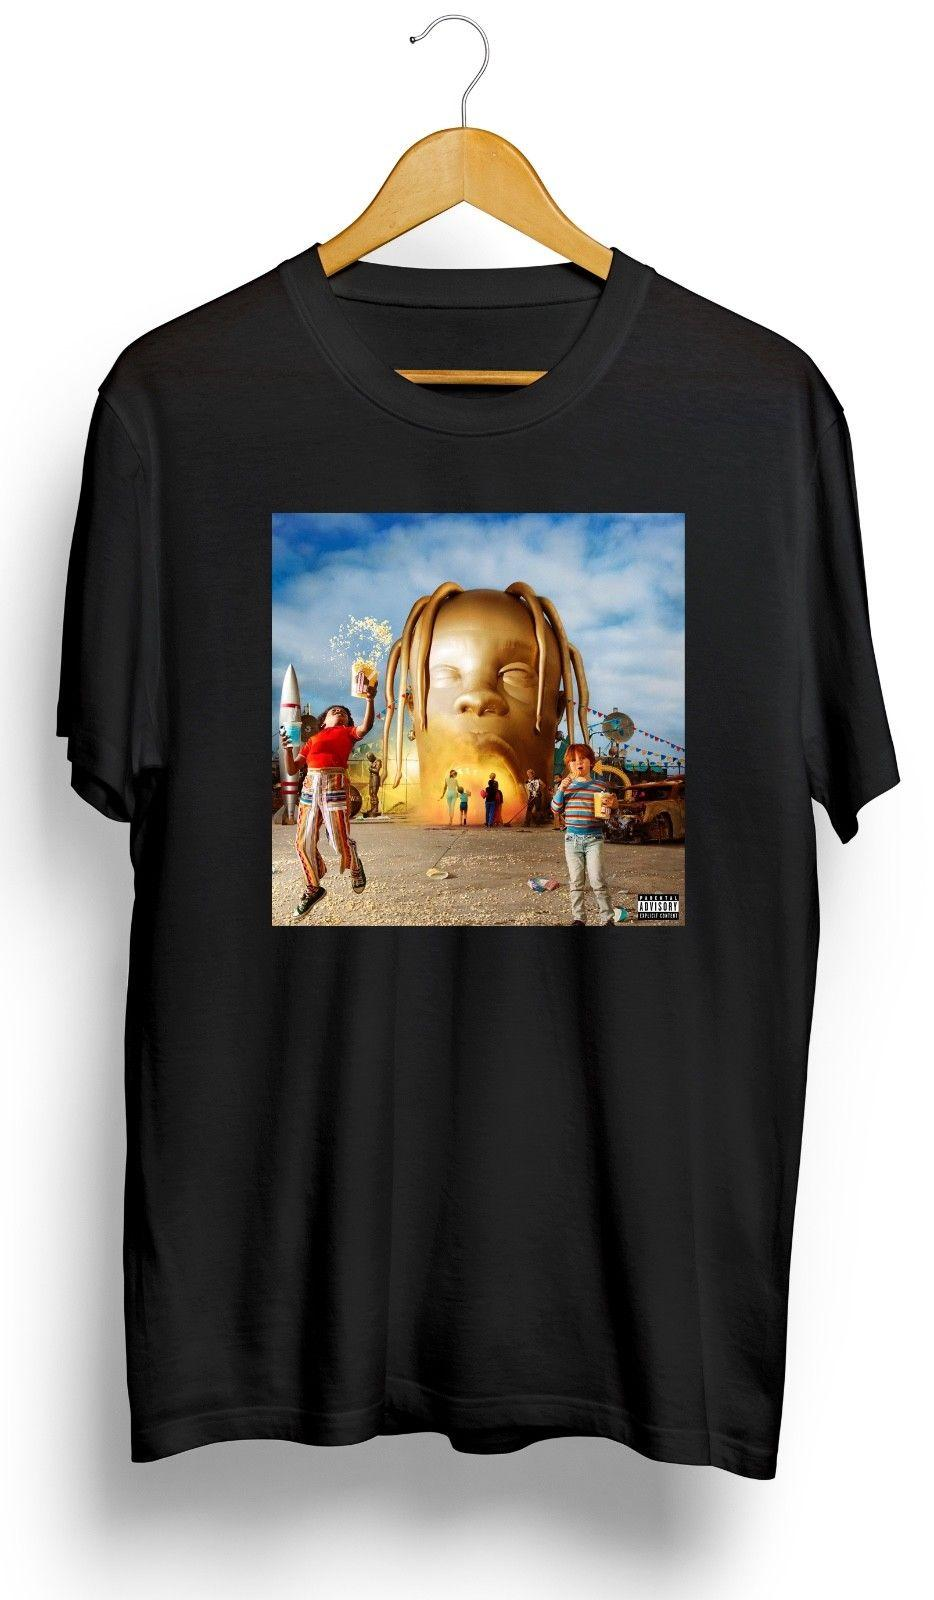 00838ca98cc7 Travis Scott | Astroworld T-Shirt Mens 2018 Fashion Brand T Shirt O ...